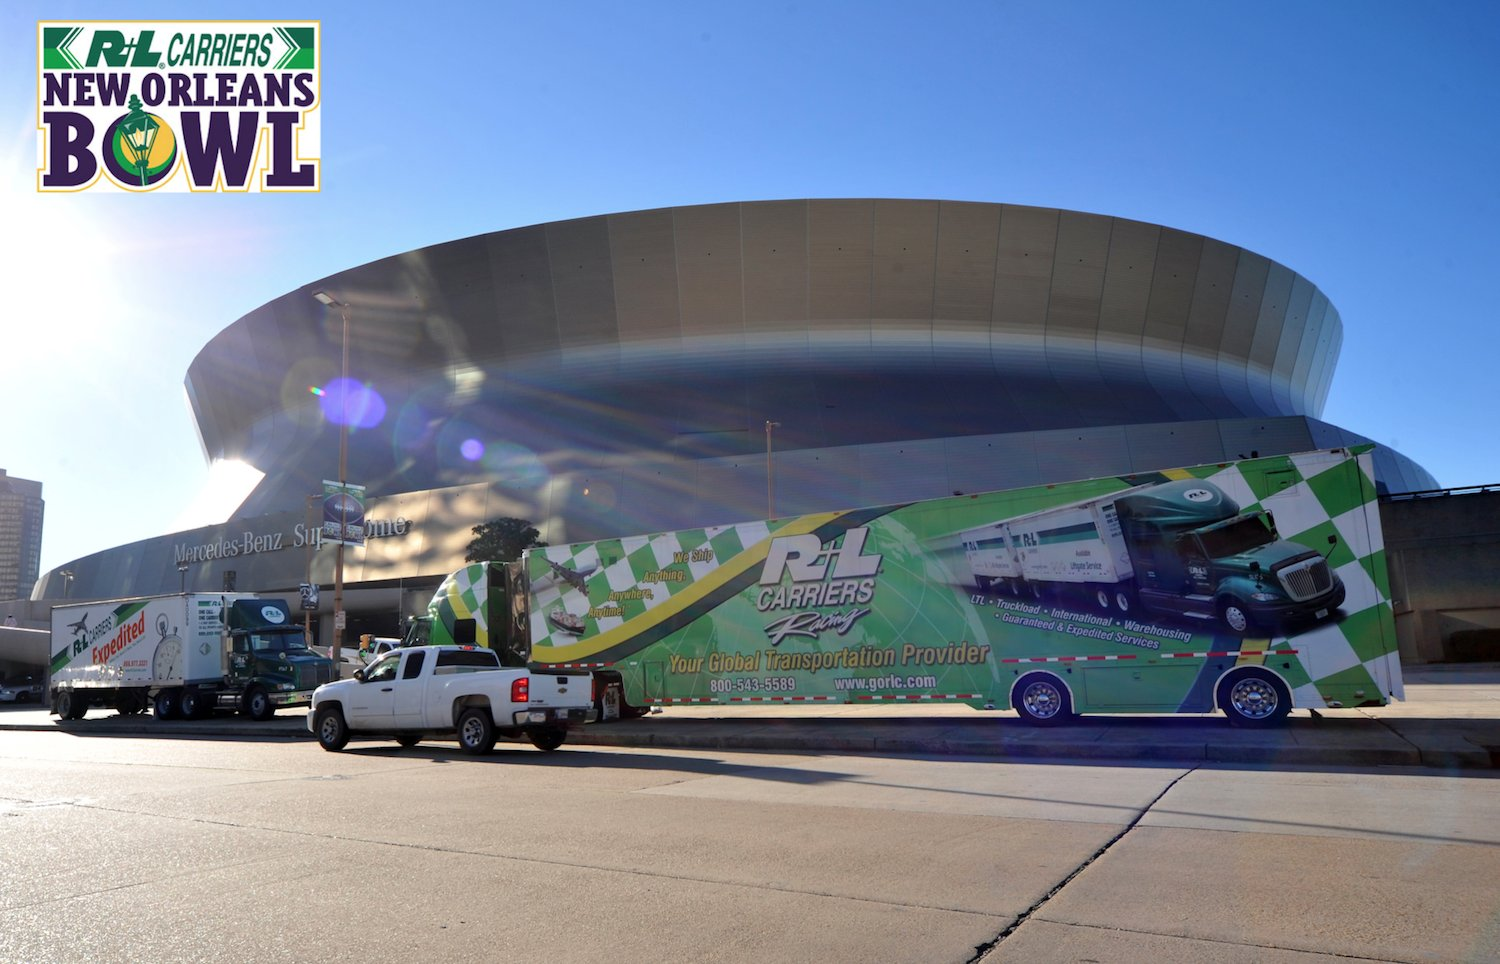 Shout out to our sponsors @RLCarriers! #DYK that the #RLBowl has been held at that iconic @MBSuperdome, since 2006? https://t.co/MVO6epN8IE https://t.co/dnQIhcFcxC